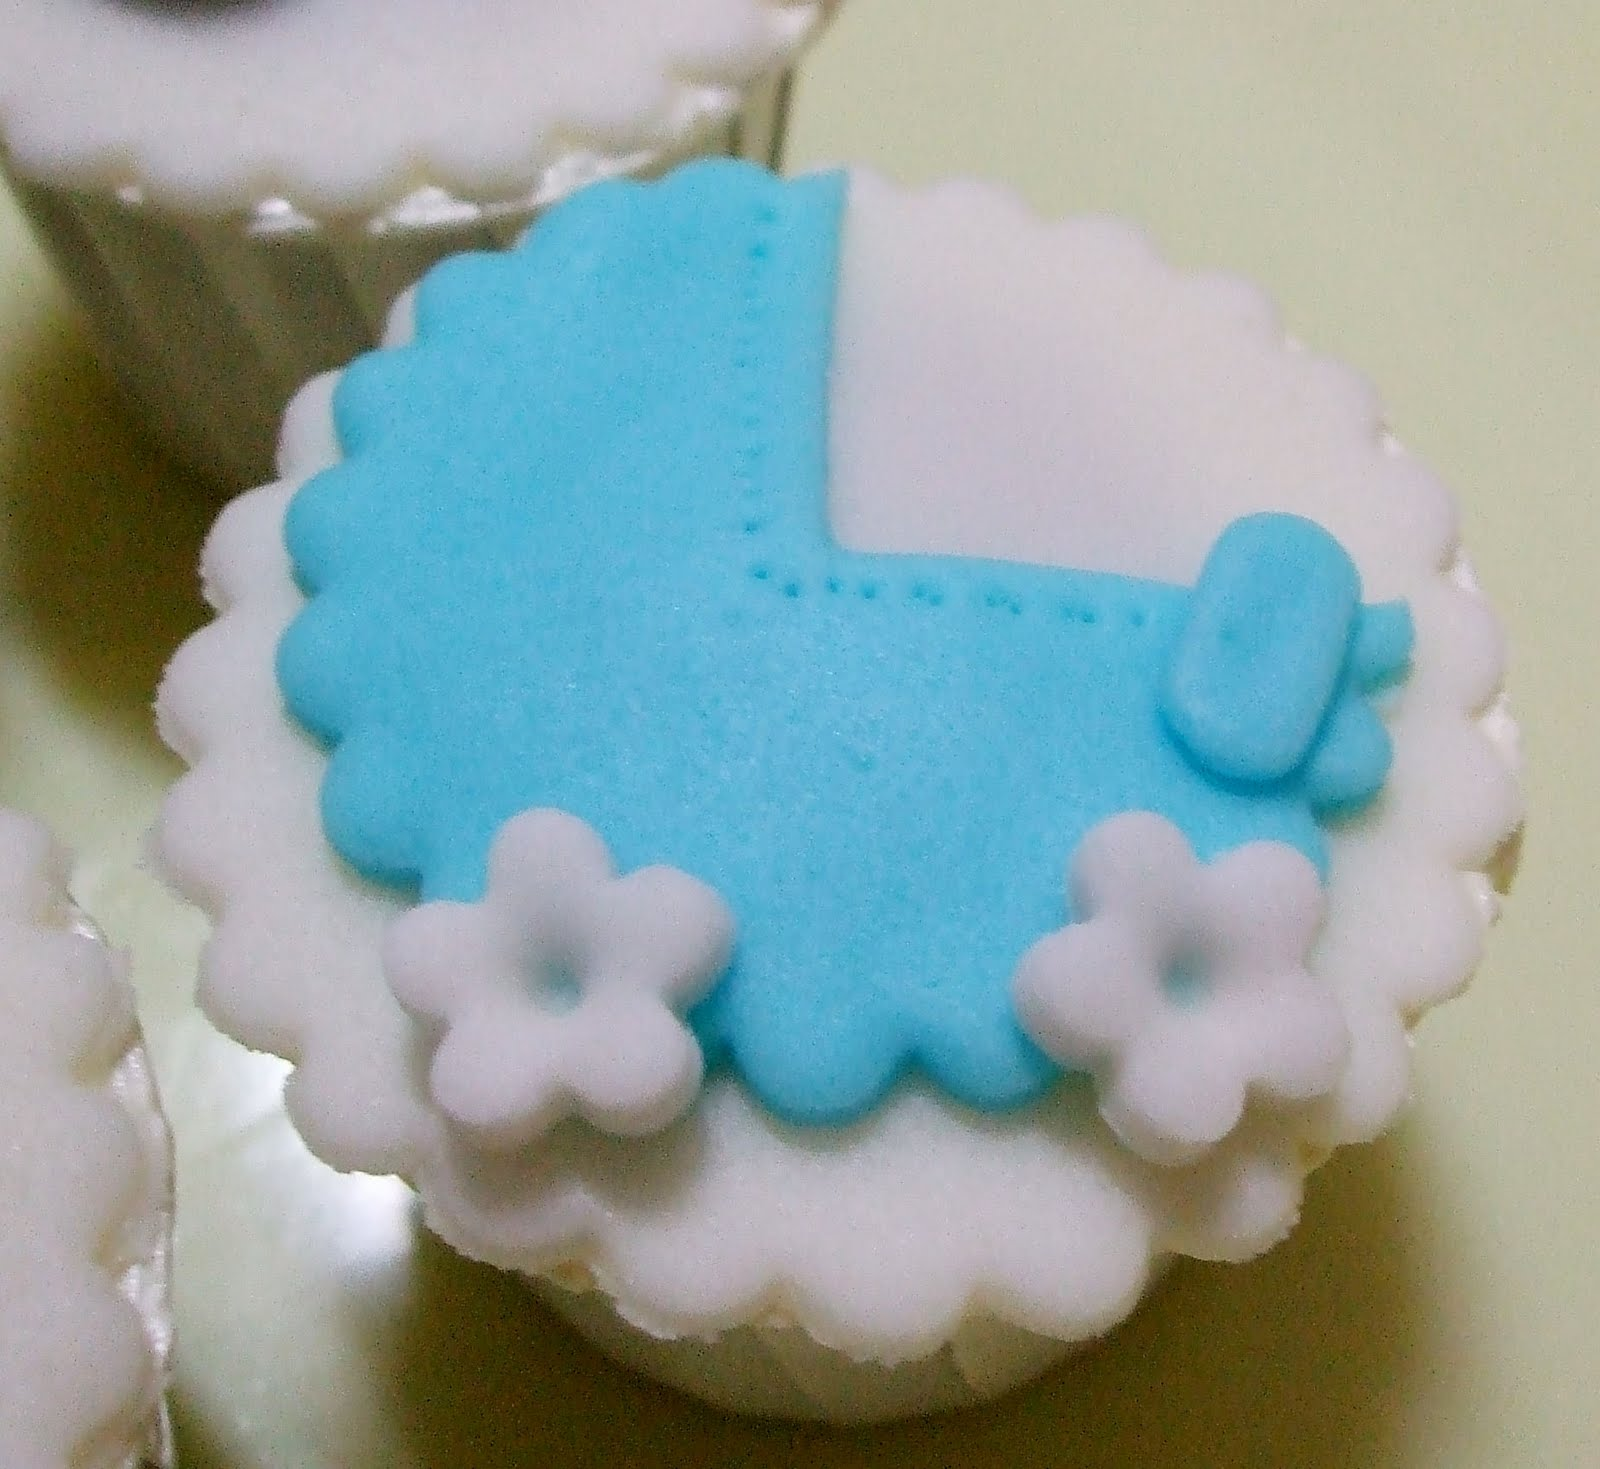 Homemade Baby Shower Cakes http://sweet-homemadecake.blogspot.com/2010 ...